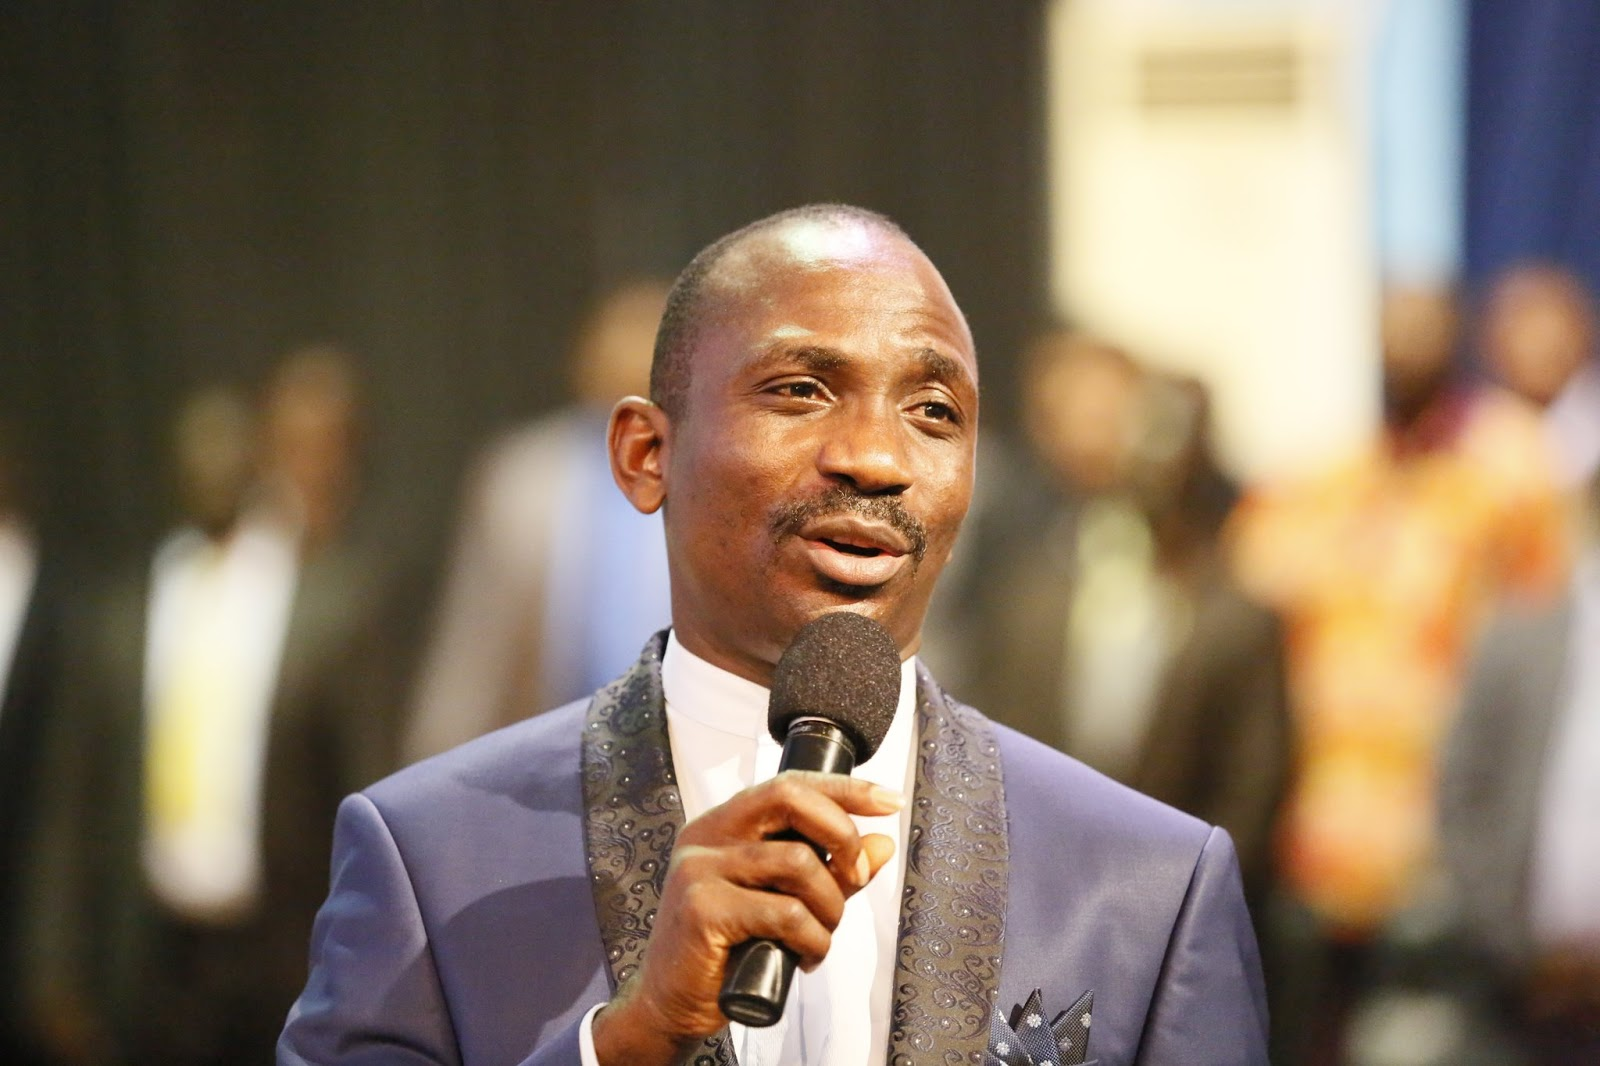 Dunamis' Daily Devotional written by Pastor Paul Enenche